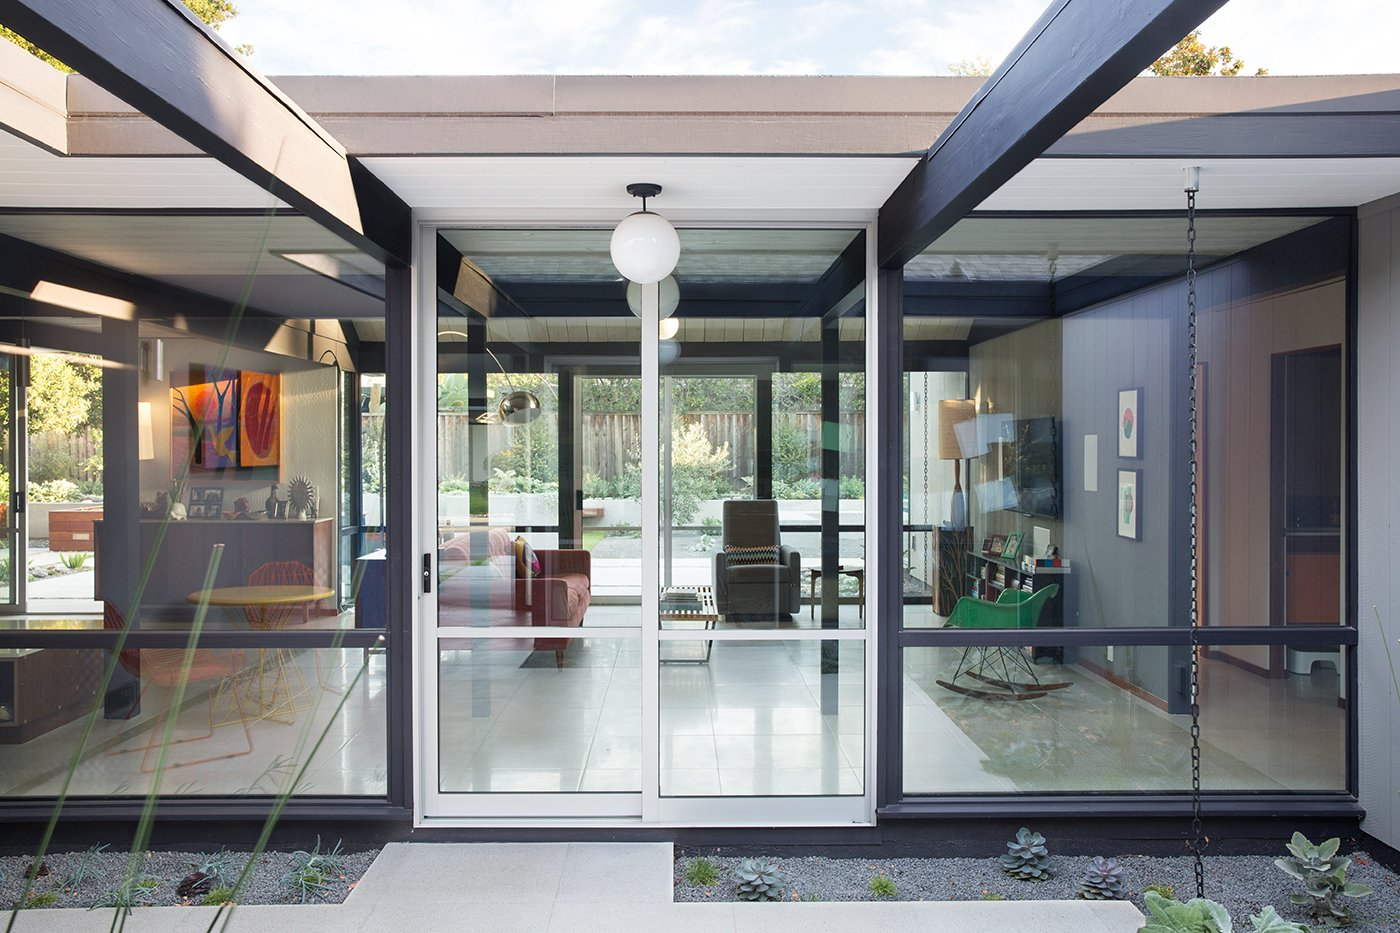 """Doors and Exterior Renewed Classic Eichler Remodel  Klopf Architecture, Growsgreen Landscape Design, and Flegel's Construction partnered to bring this mid-century atrium Eichler home up to 21st century standards. Together with the owners, Geoff Campen and the Klopf Architecture team carefully integrated elements and ideas from the mid-century period without making the space seem dated. They entrusted Klopf Architecture to respectfully expand and update the home, while still keeping it """"classic"""". The Klopf team helped them open up the kitchen, dining, and living spaces into one flowing great room, expand the master suite, replace the kitchen and bathrooms, and provide additional features like an office and powder room, all while maintaining the mid-century modern style of this Silicon Valley home.   Photo 7 of 8 in The Unsung Story of Eichler Homes and How They Helped Integrate American Neighborhoods from Klopf Architecture"""